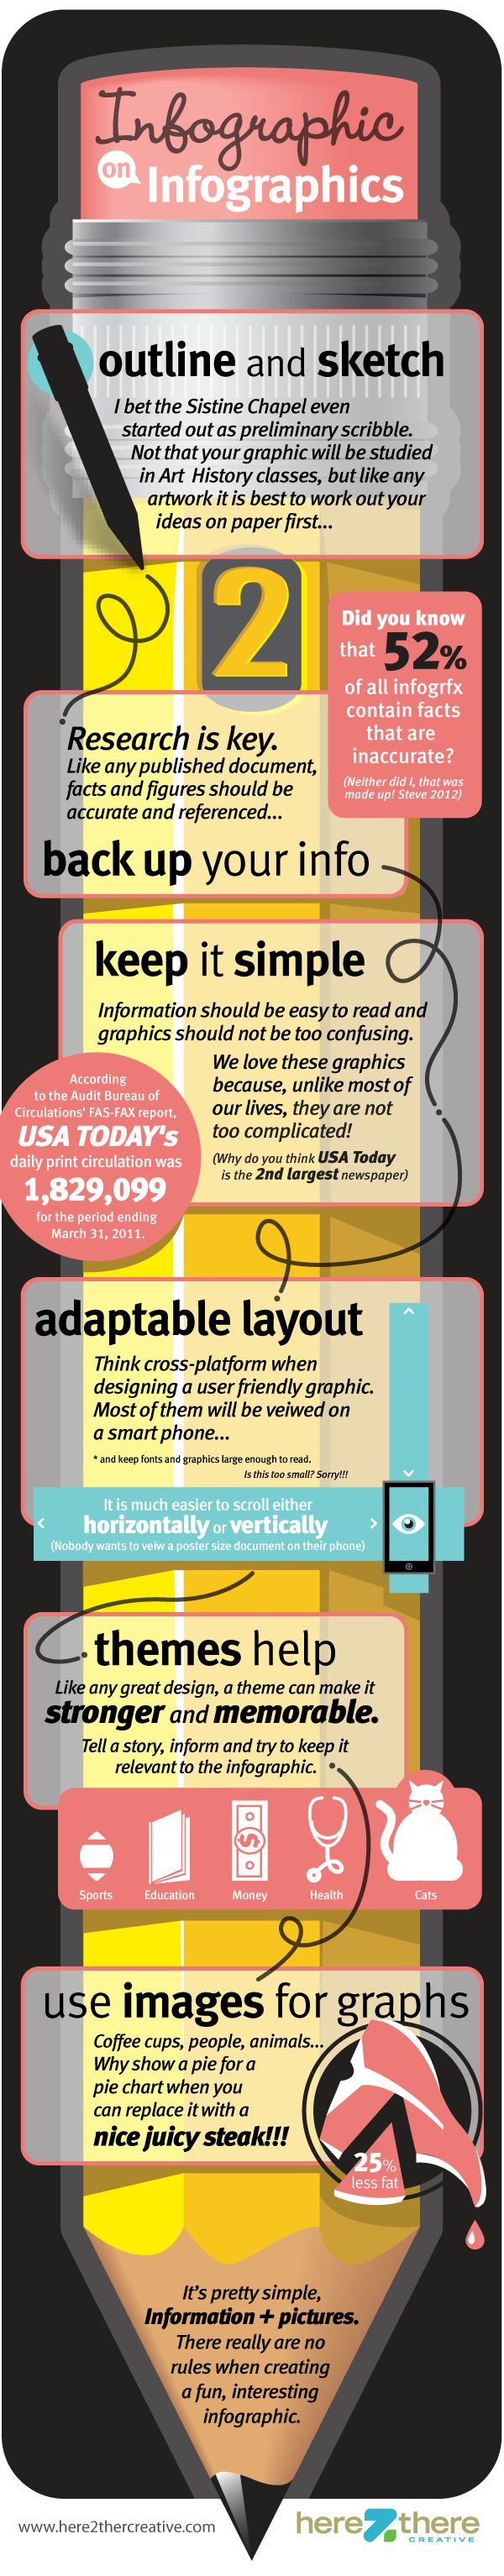 Infographic on Infographics [infographic]